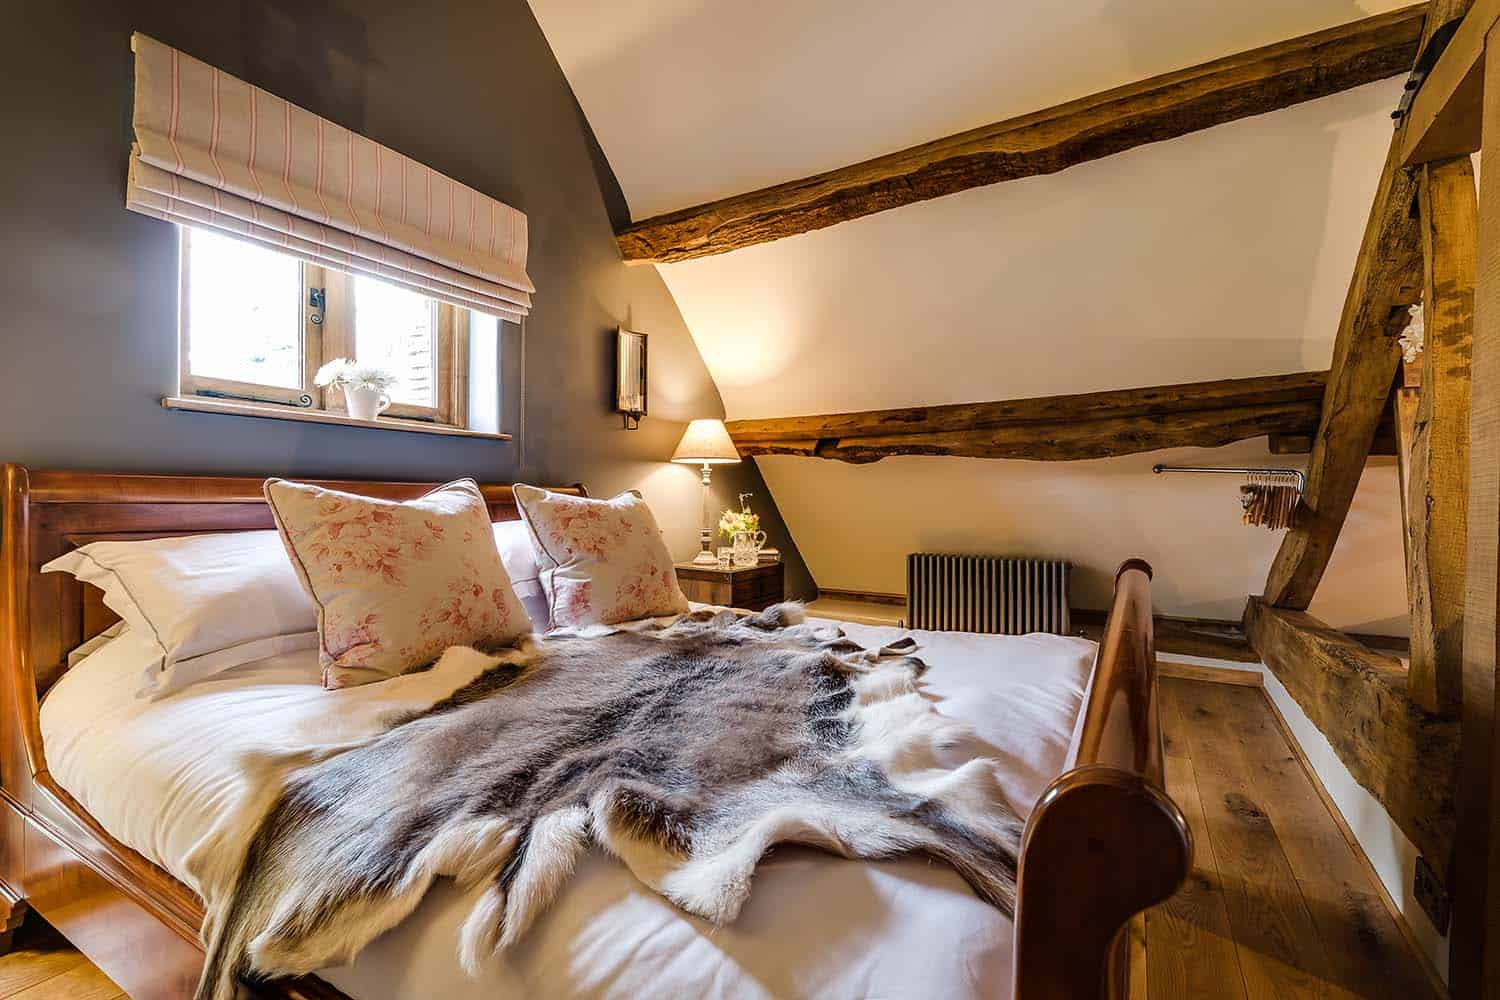 countryside-retreat-bedroomcozy-retreat-herefordshire-bedroom